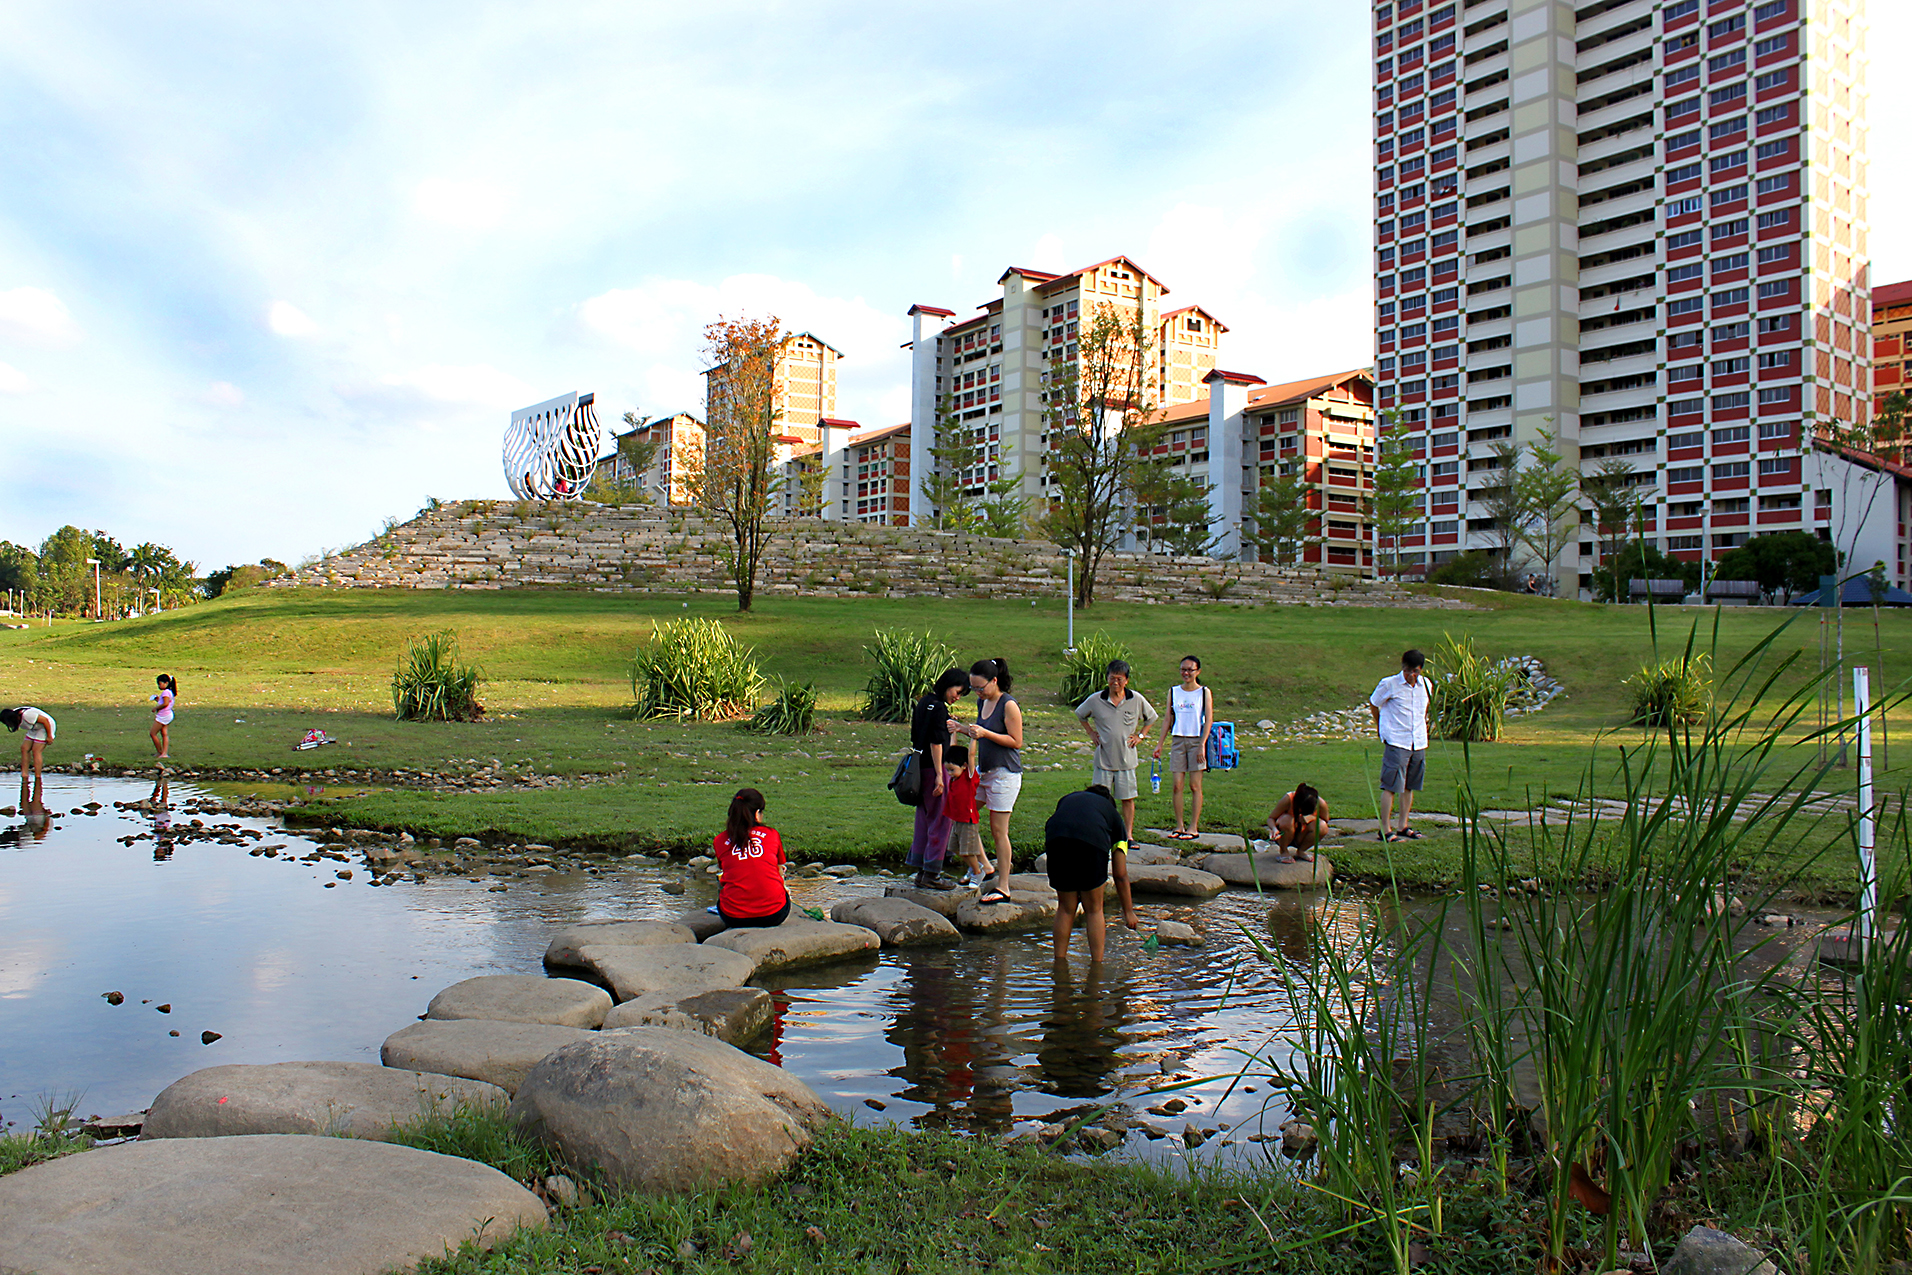 Singapore_Bishan Park people interaction_c Dreiseitl_109 .jpg